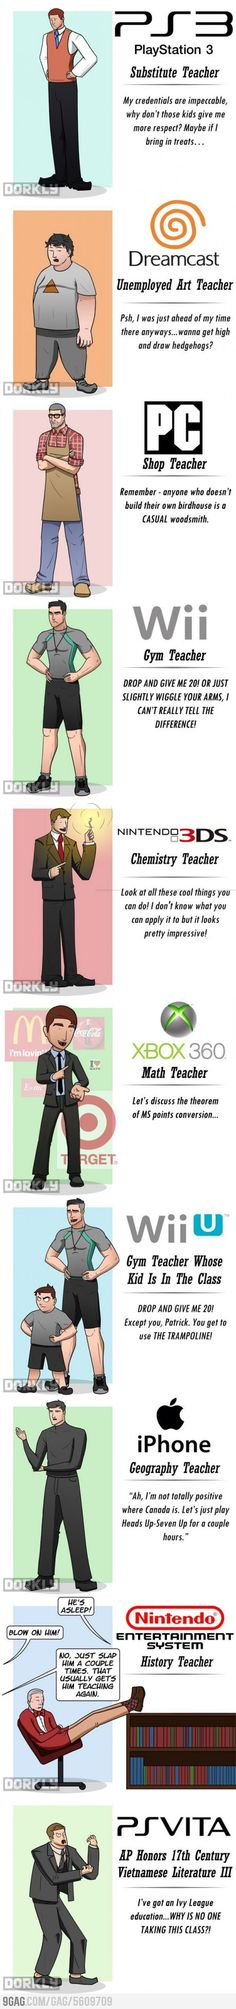 This picture shows what would happen if video game consoles were actually teachers. It's pretty funny actually. It's also ironic since video games hinder ones education. It's also one of my favorite charts to look at because as a gamer, this is true. Video Game Memes, Video Games Funny, Funny Games, Funny Videos, Chuck Norris, King's Quest, All Meme, Oldschool, Gaming Memes